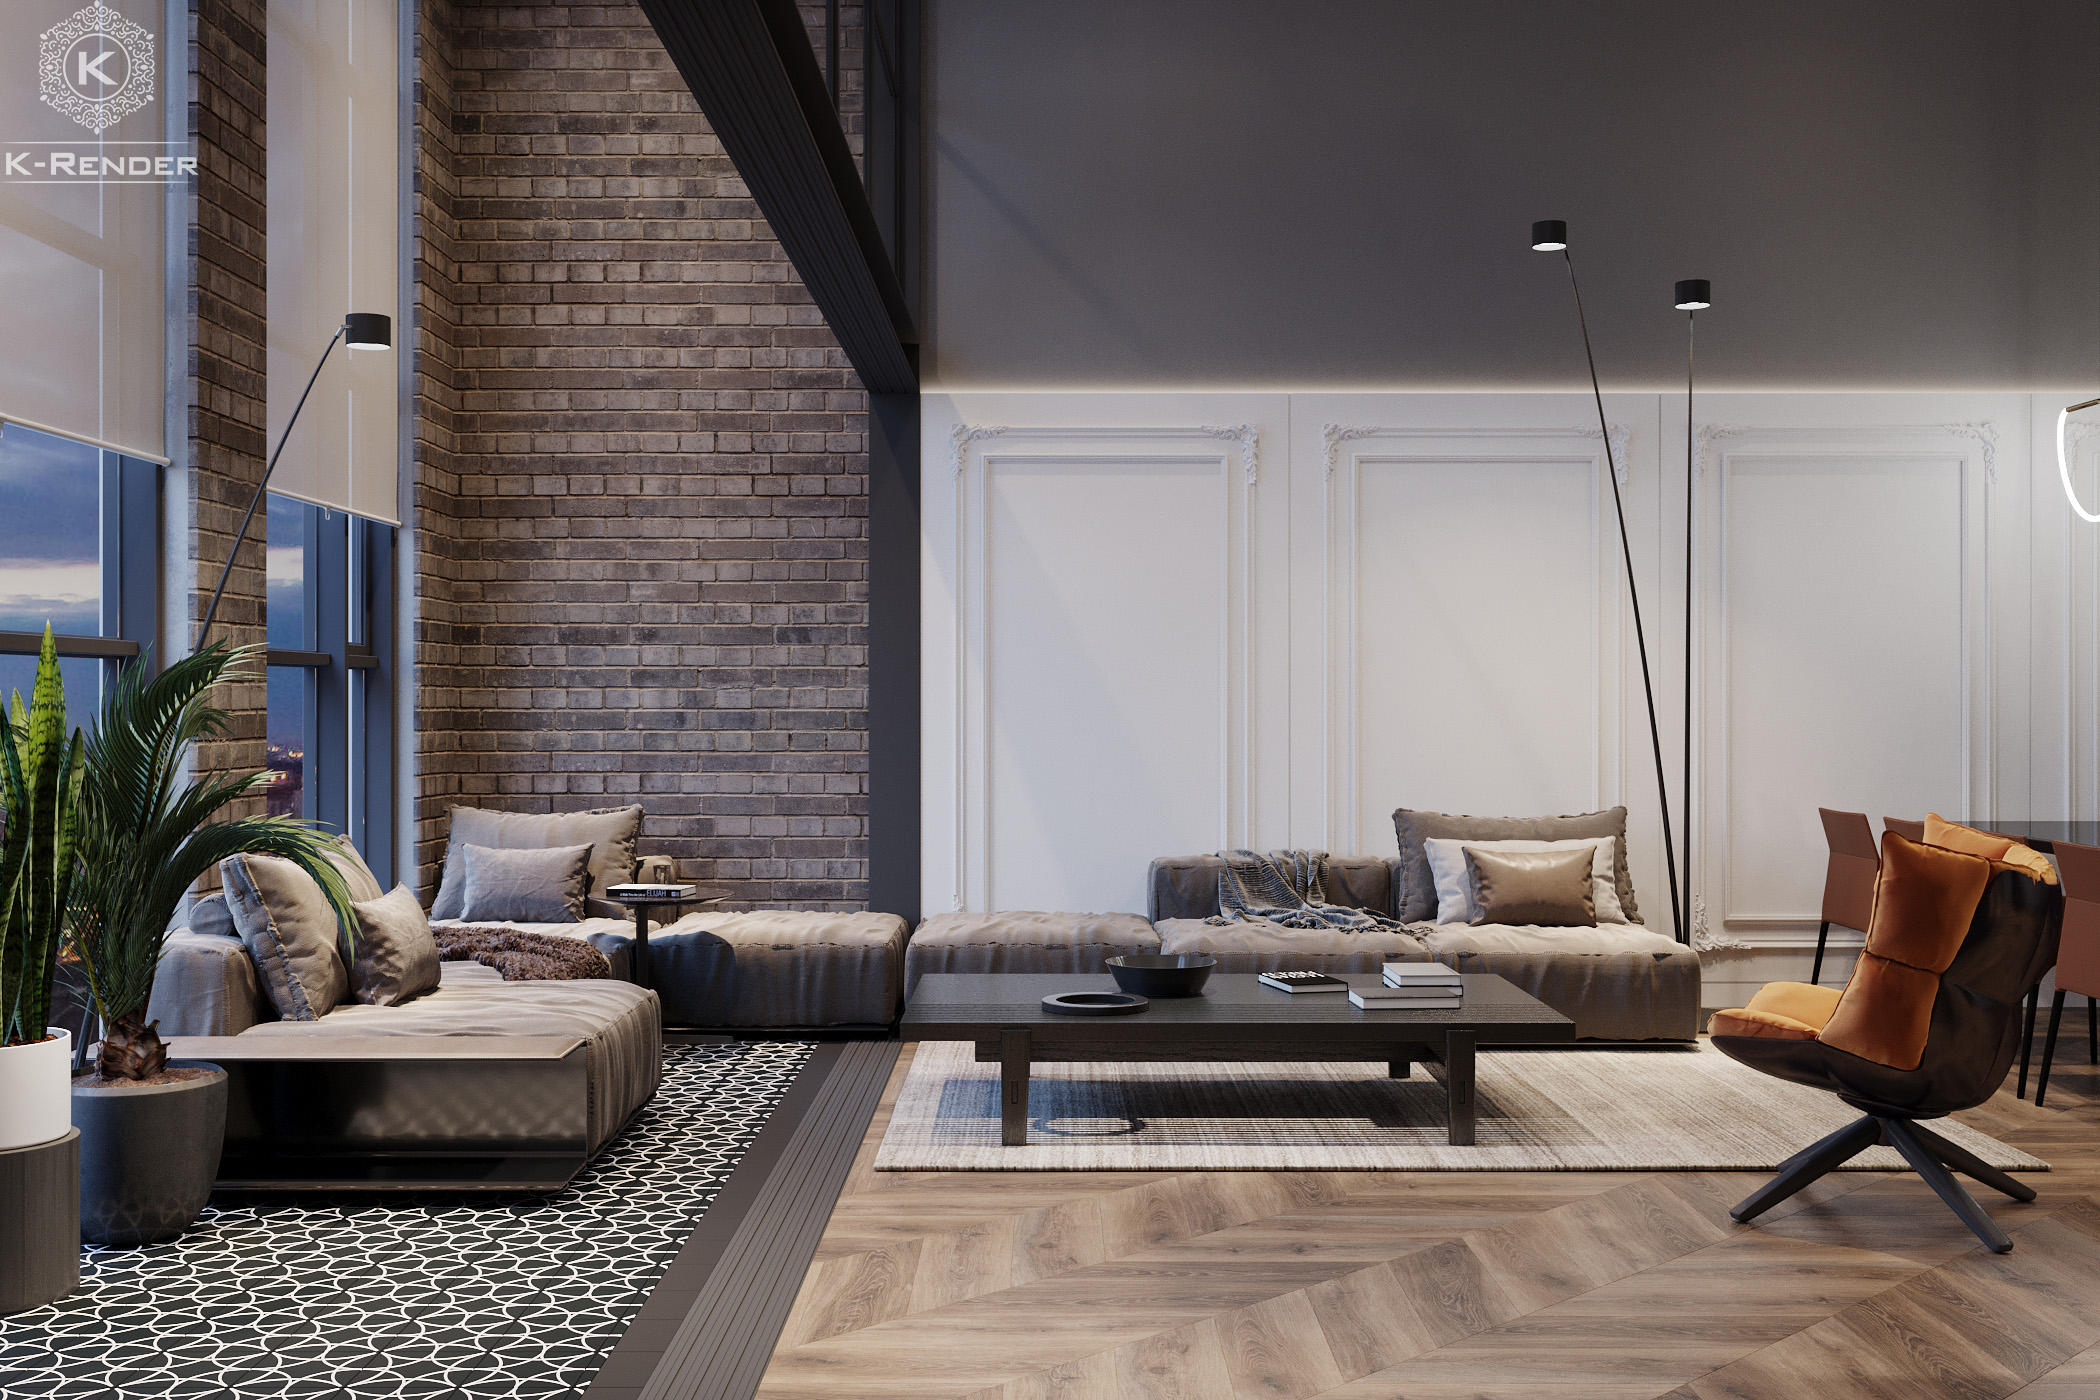 some-tips-of-interior-rendering-that-any-visualizer-should-know-3